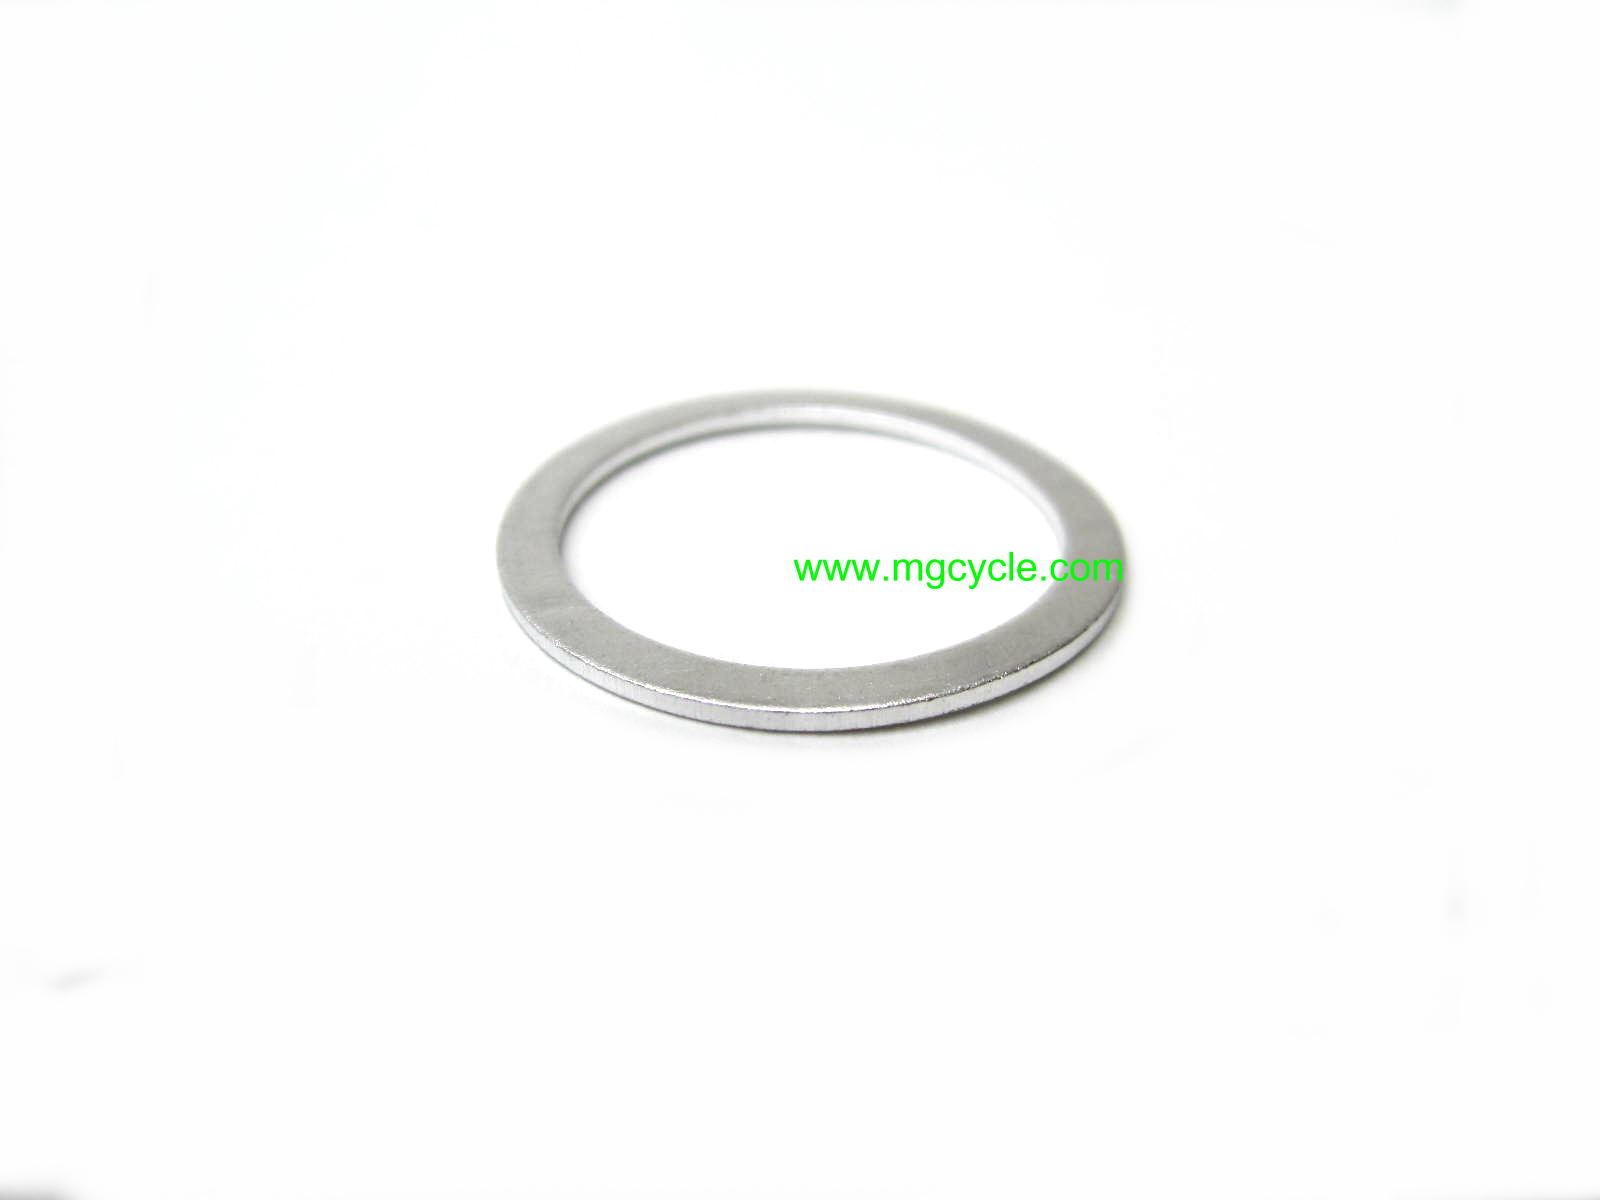 oil drain plug sealing washer, Ducati Monster, SS, Multistrada